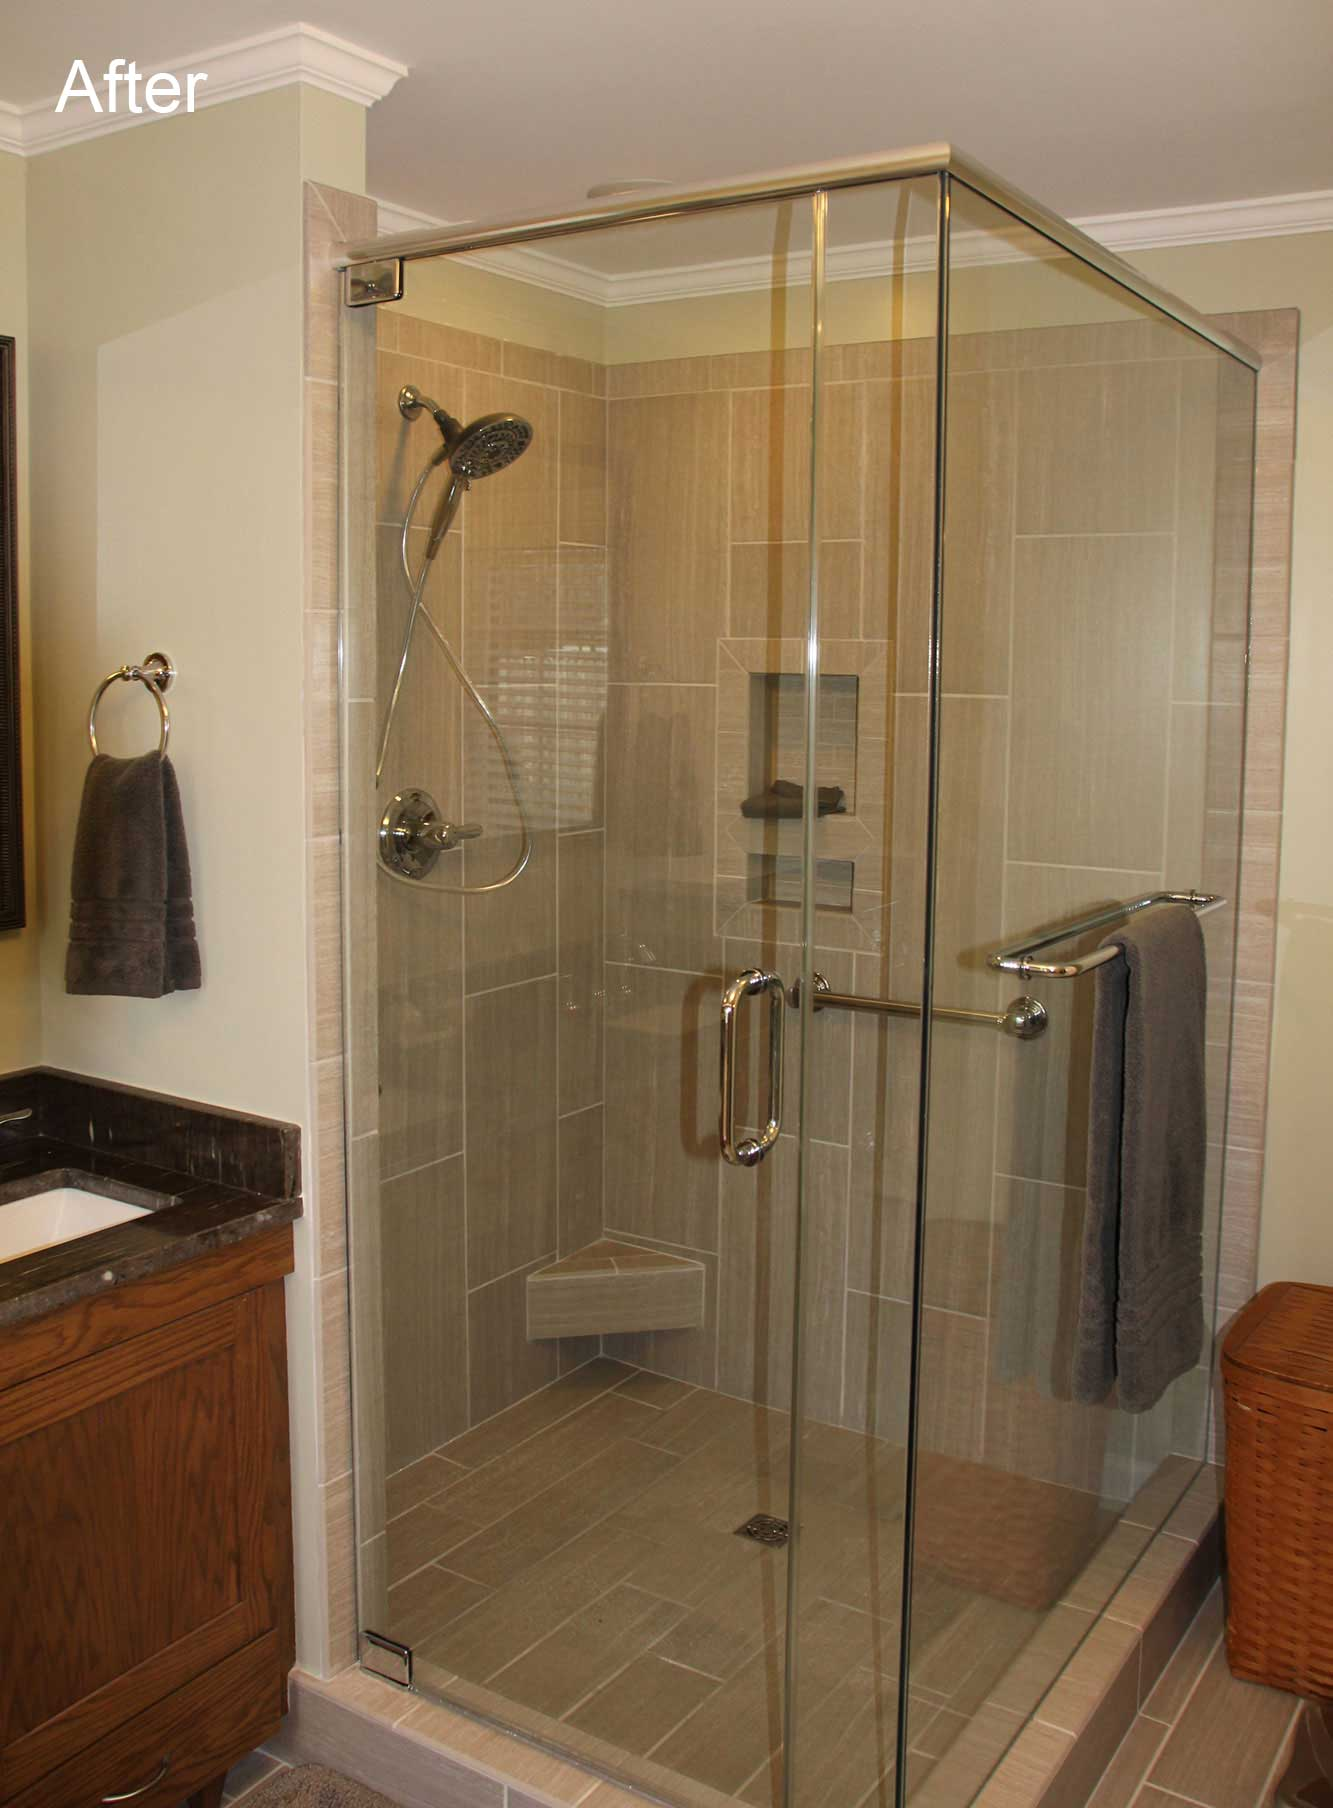 Open glass shower surround after remodel